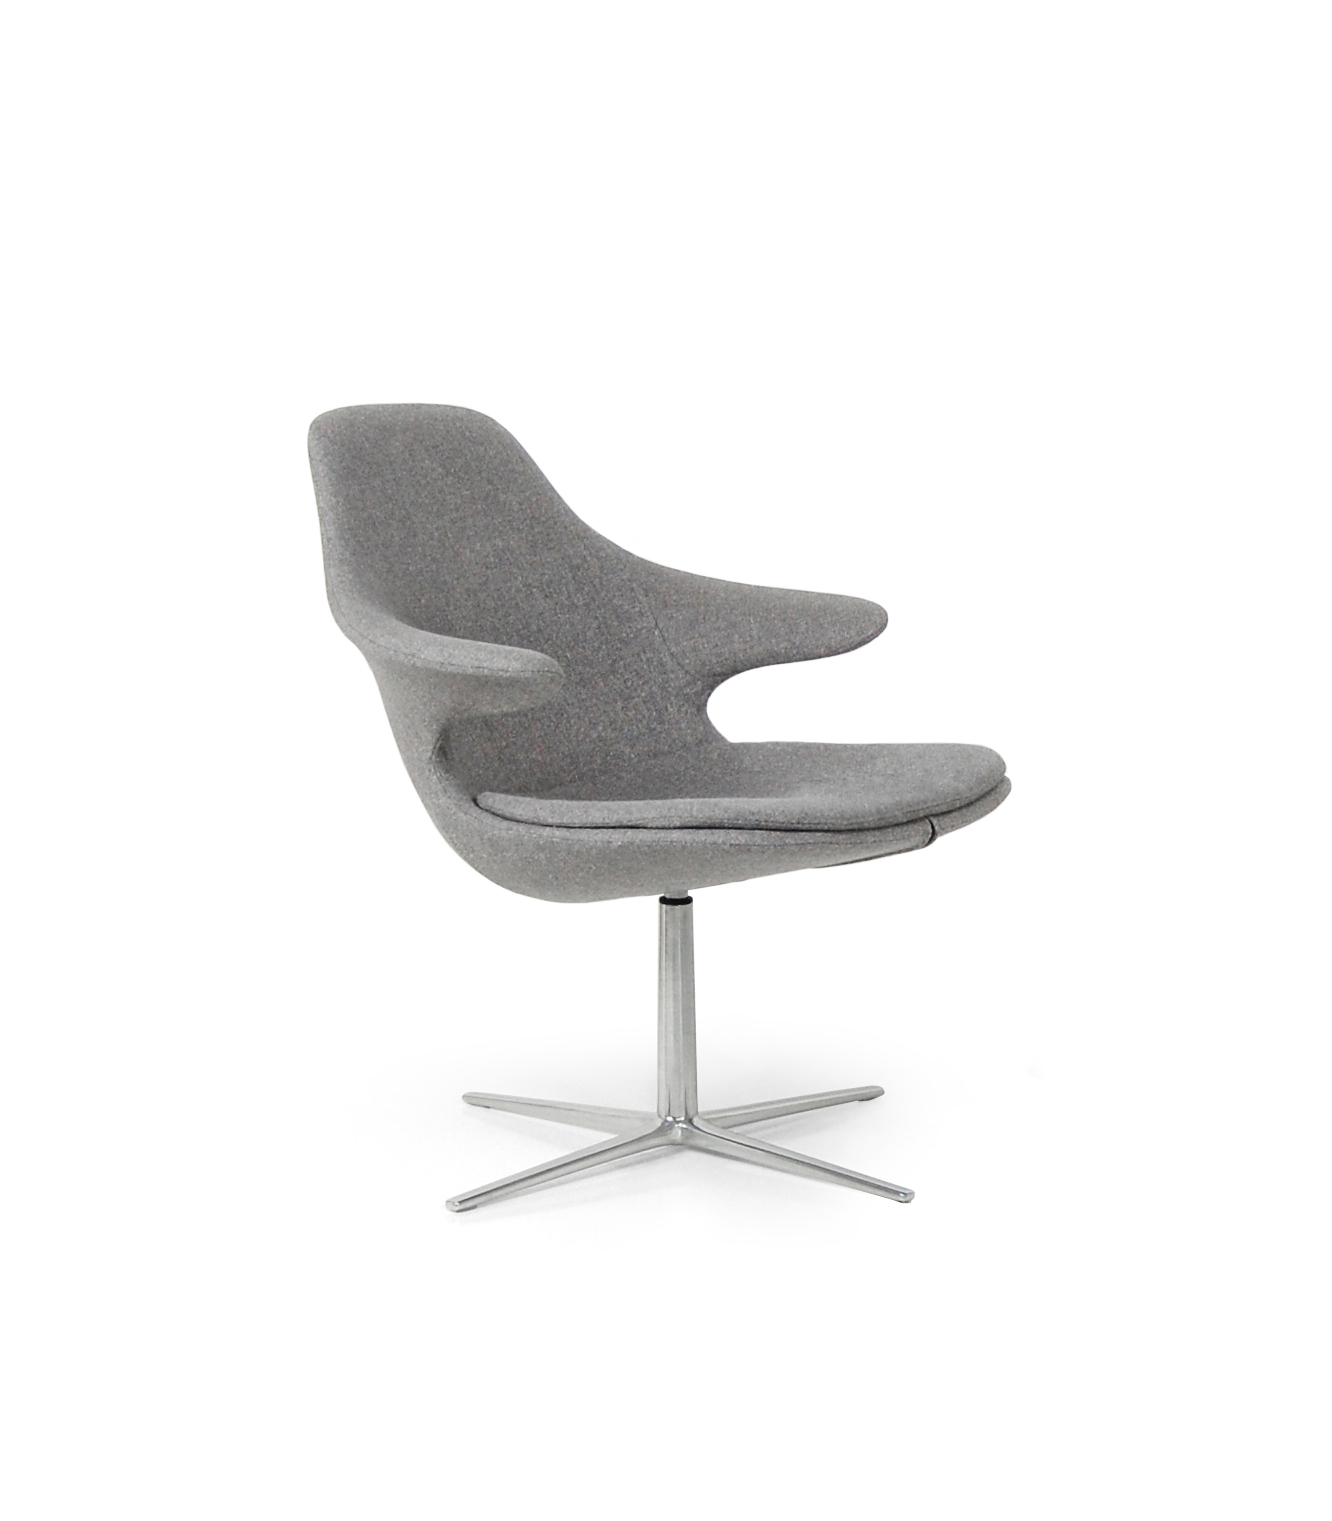 George Chair - Breakout Chair - Breakout Furniture